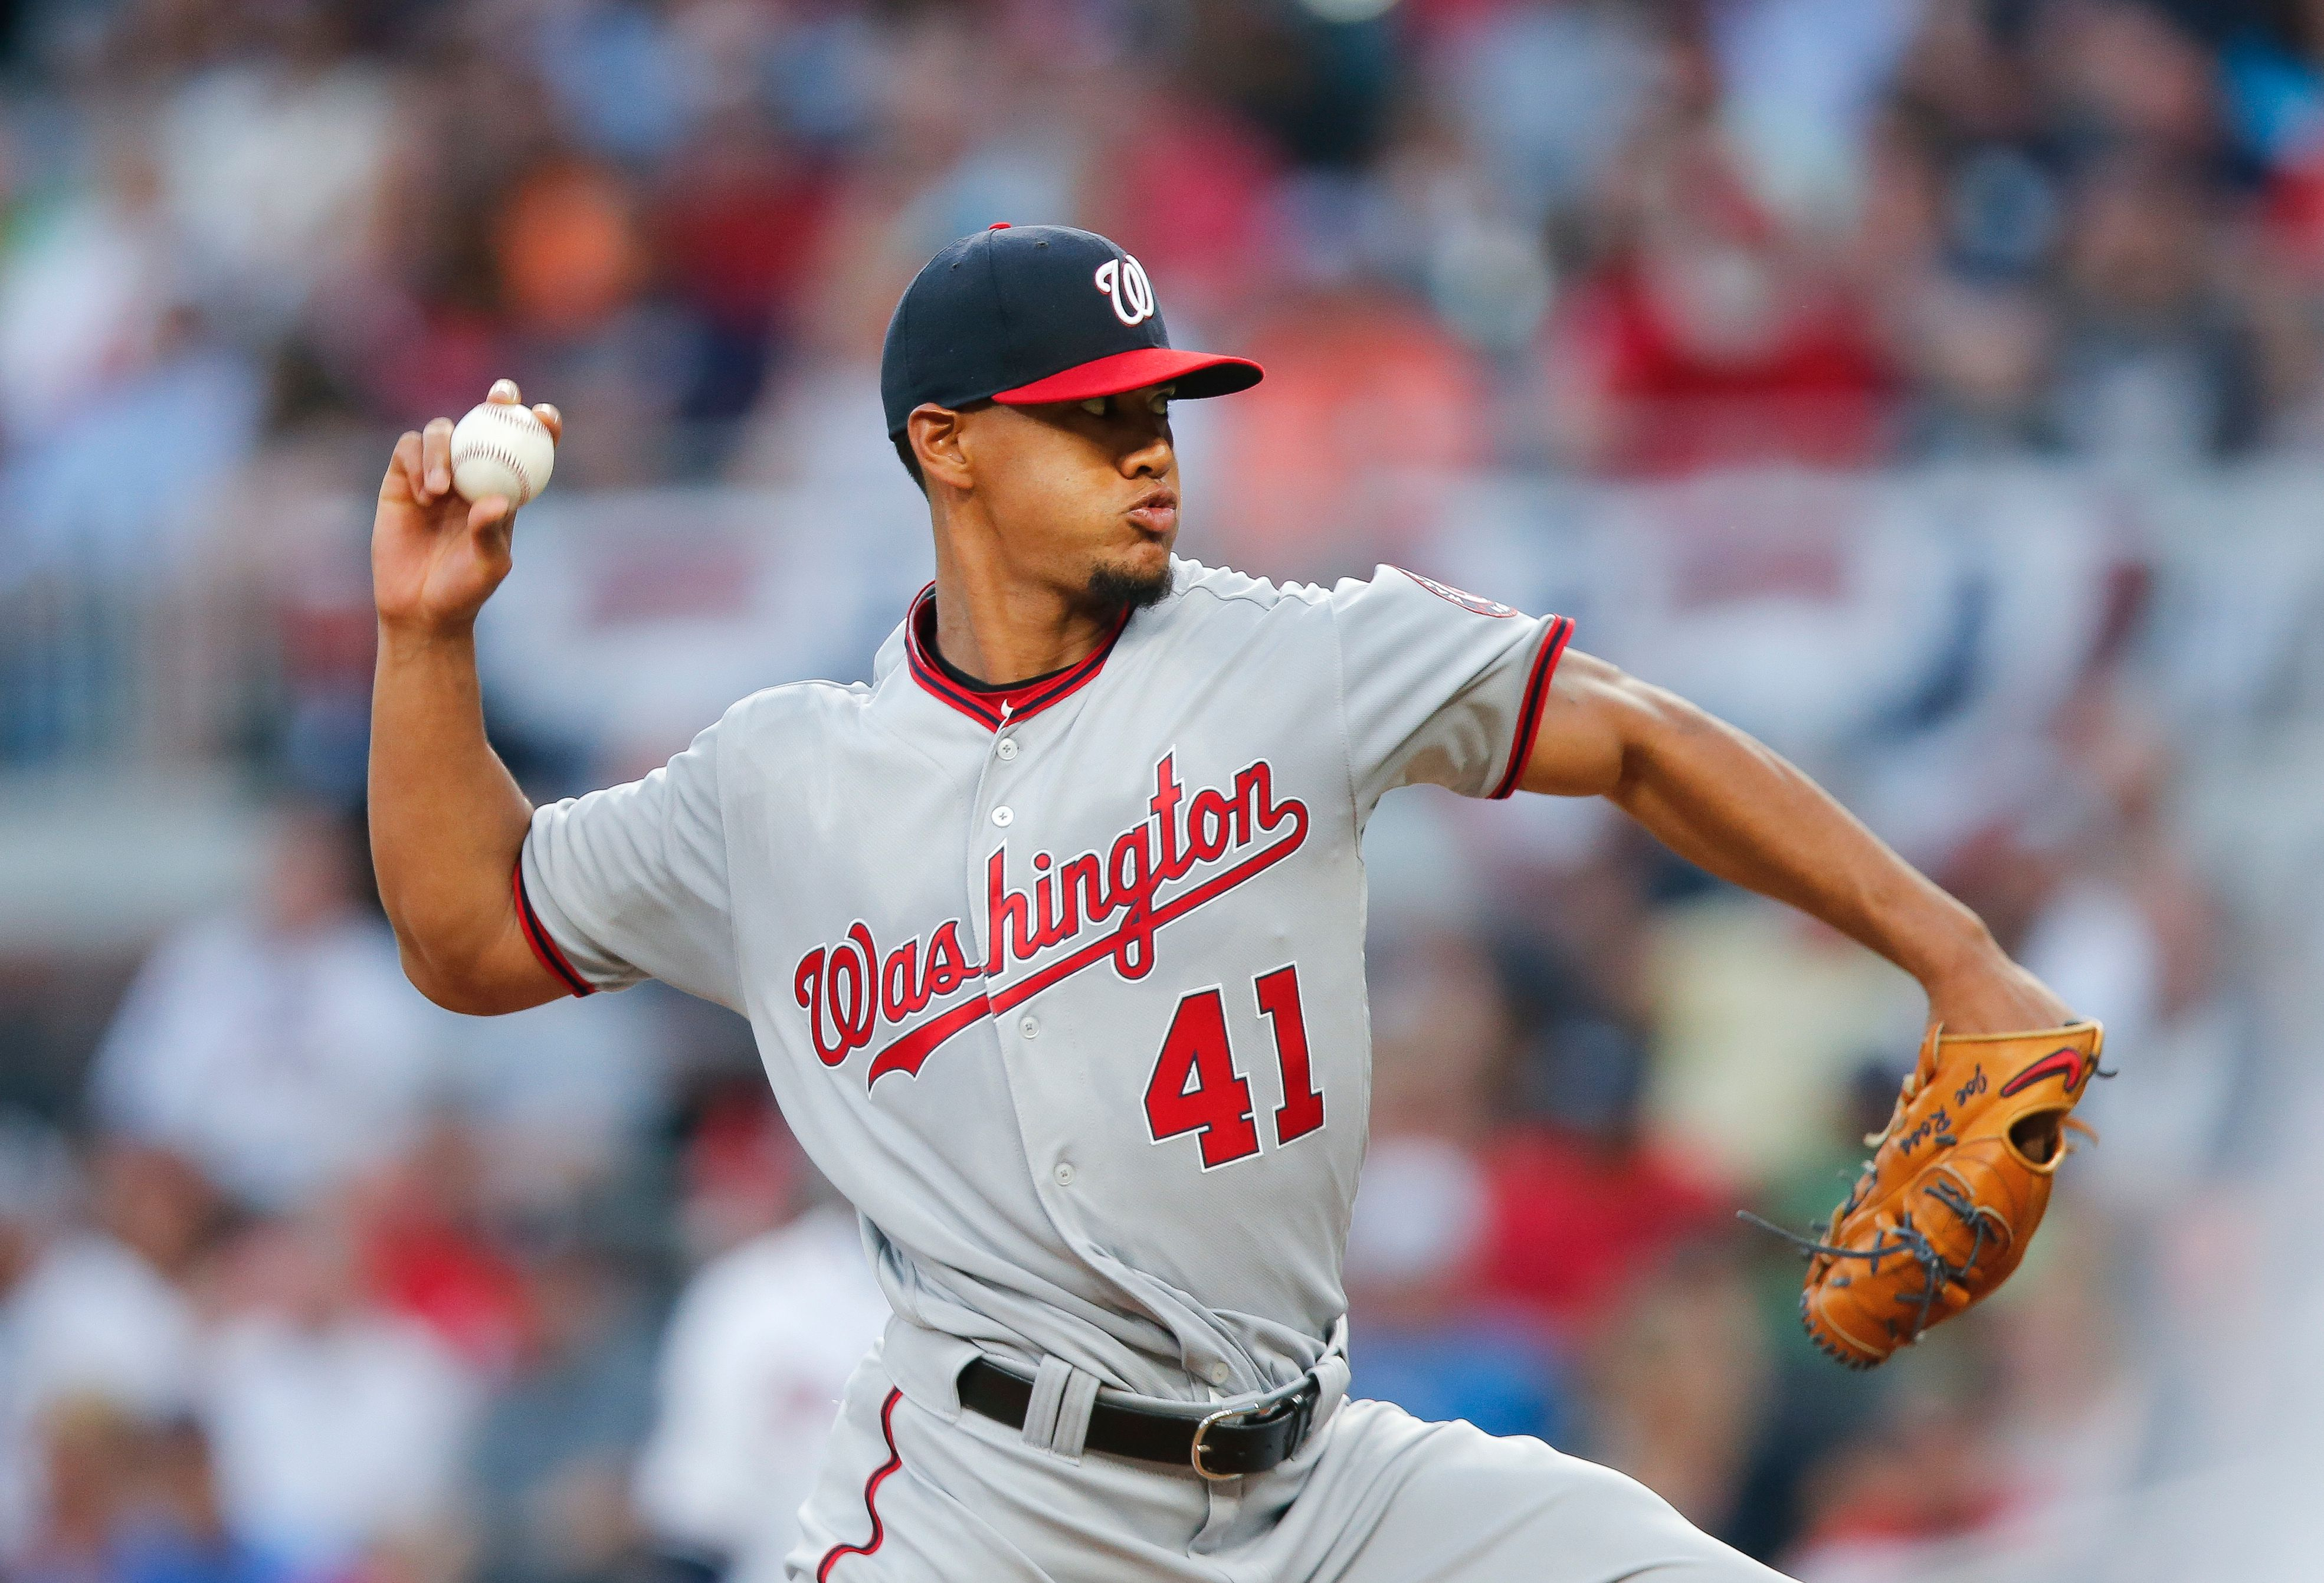 Washington Nationals pitcher Joe Ross to have Tommy John surgery